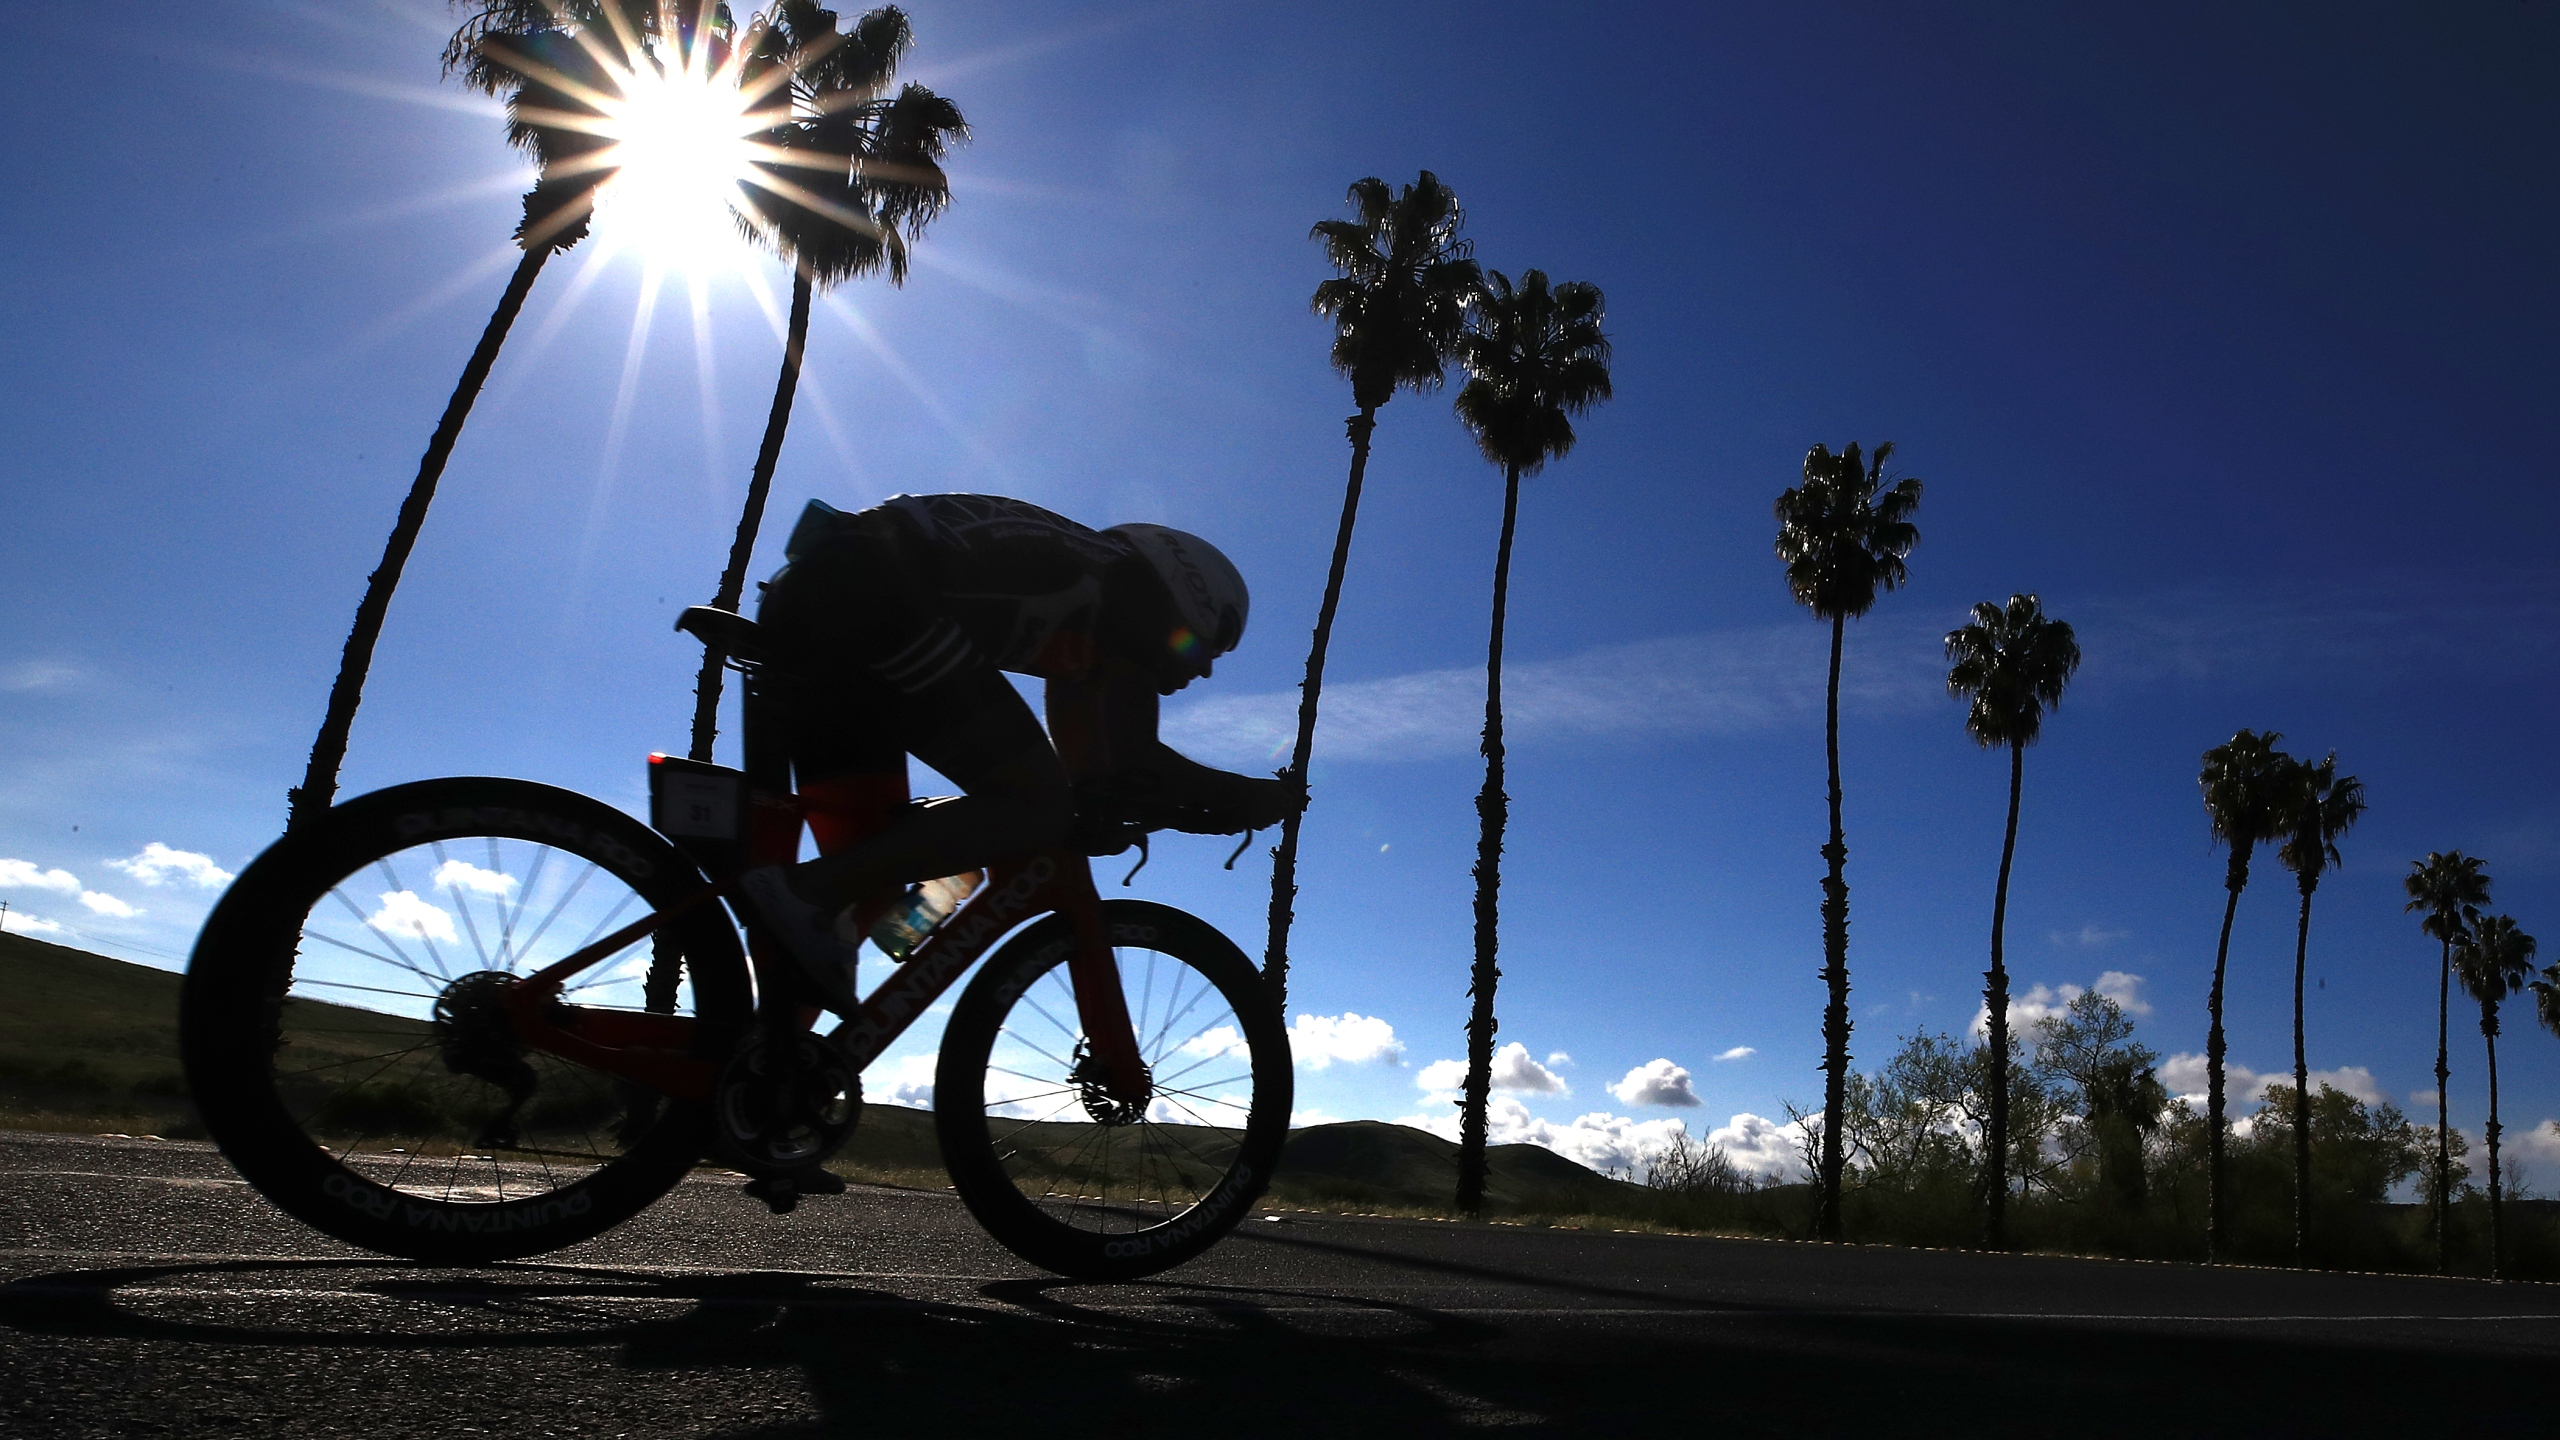 A man cycles in Oceanside on April 6, 2019. (Credit: Sean M. Haffey/Getty Images)